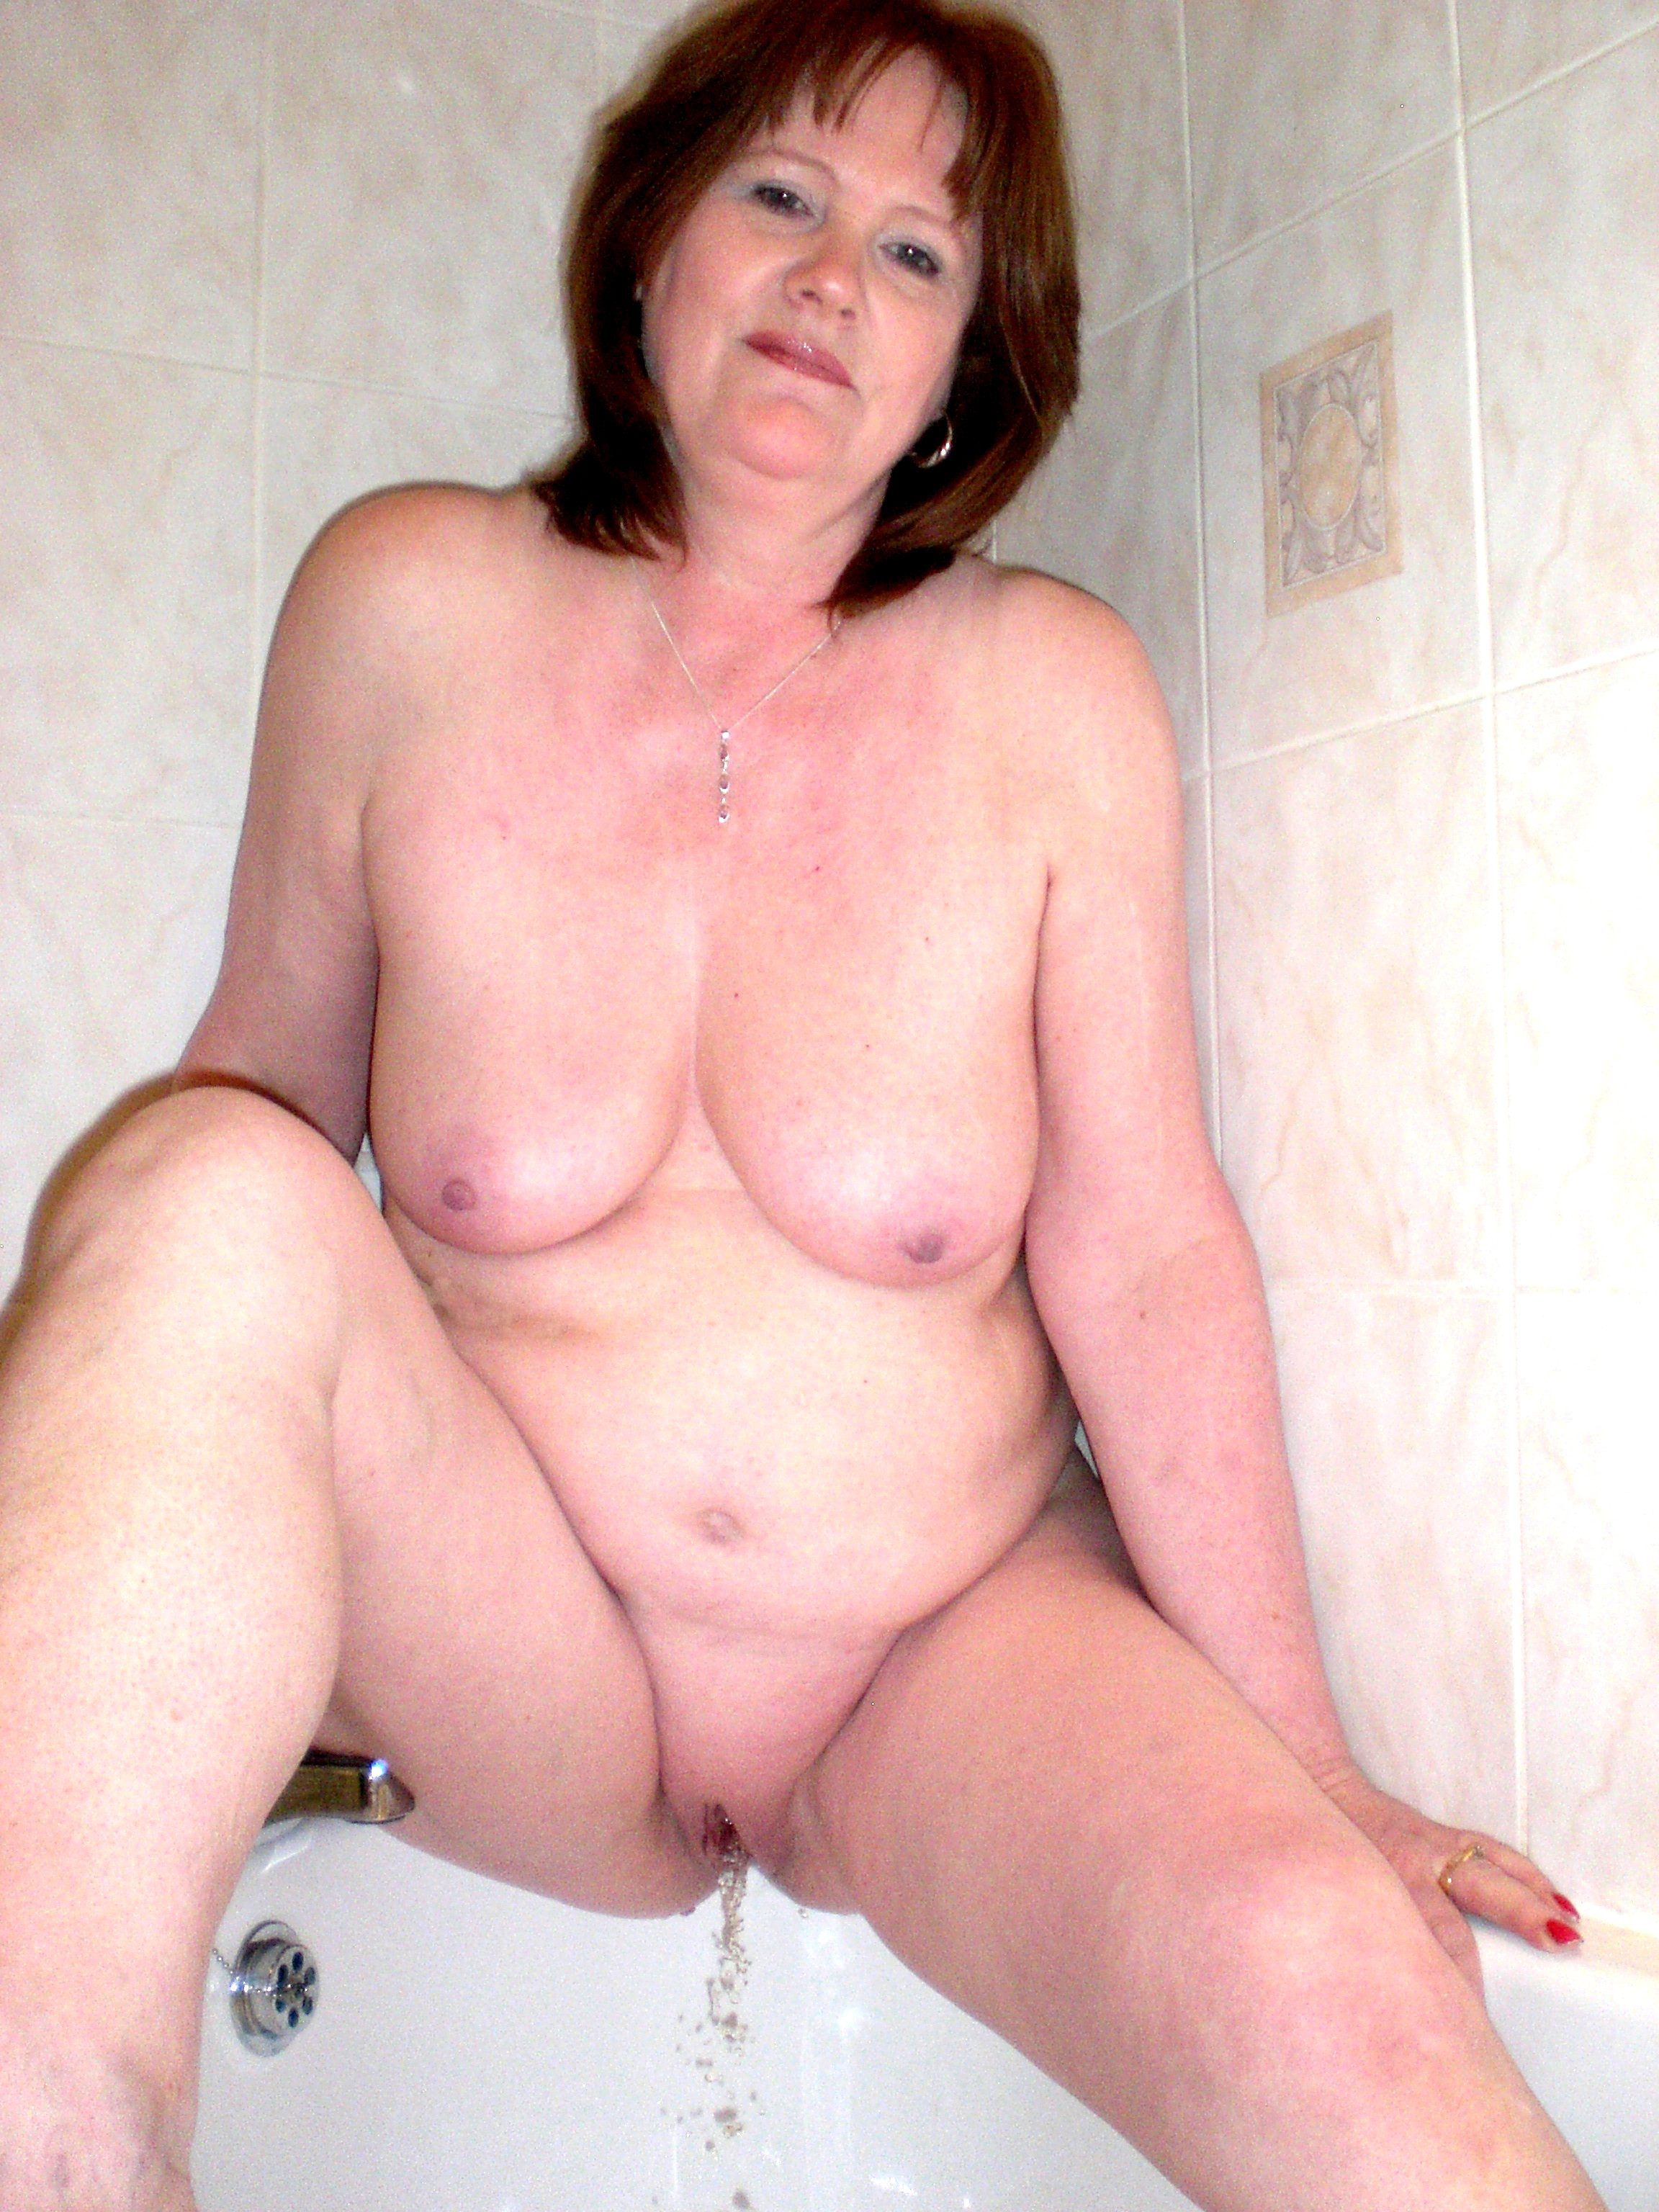 fee milfs milf postings updated daily